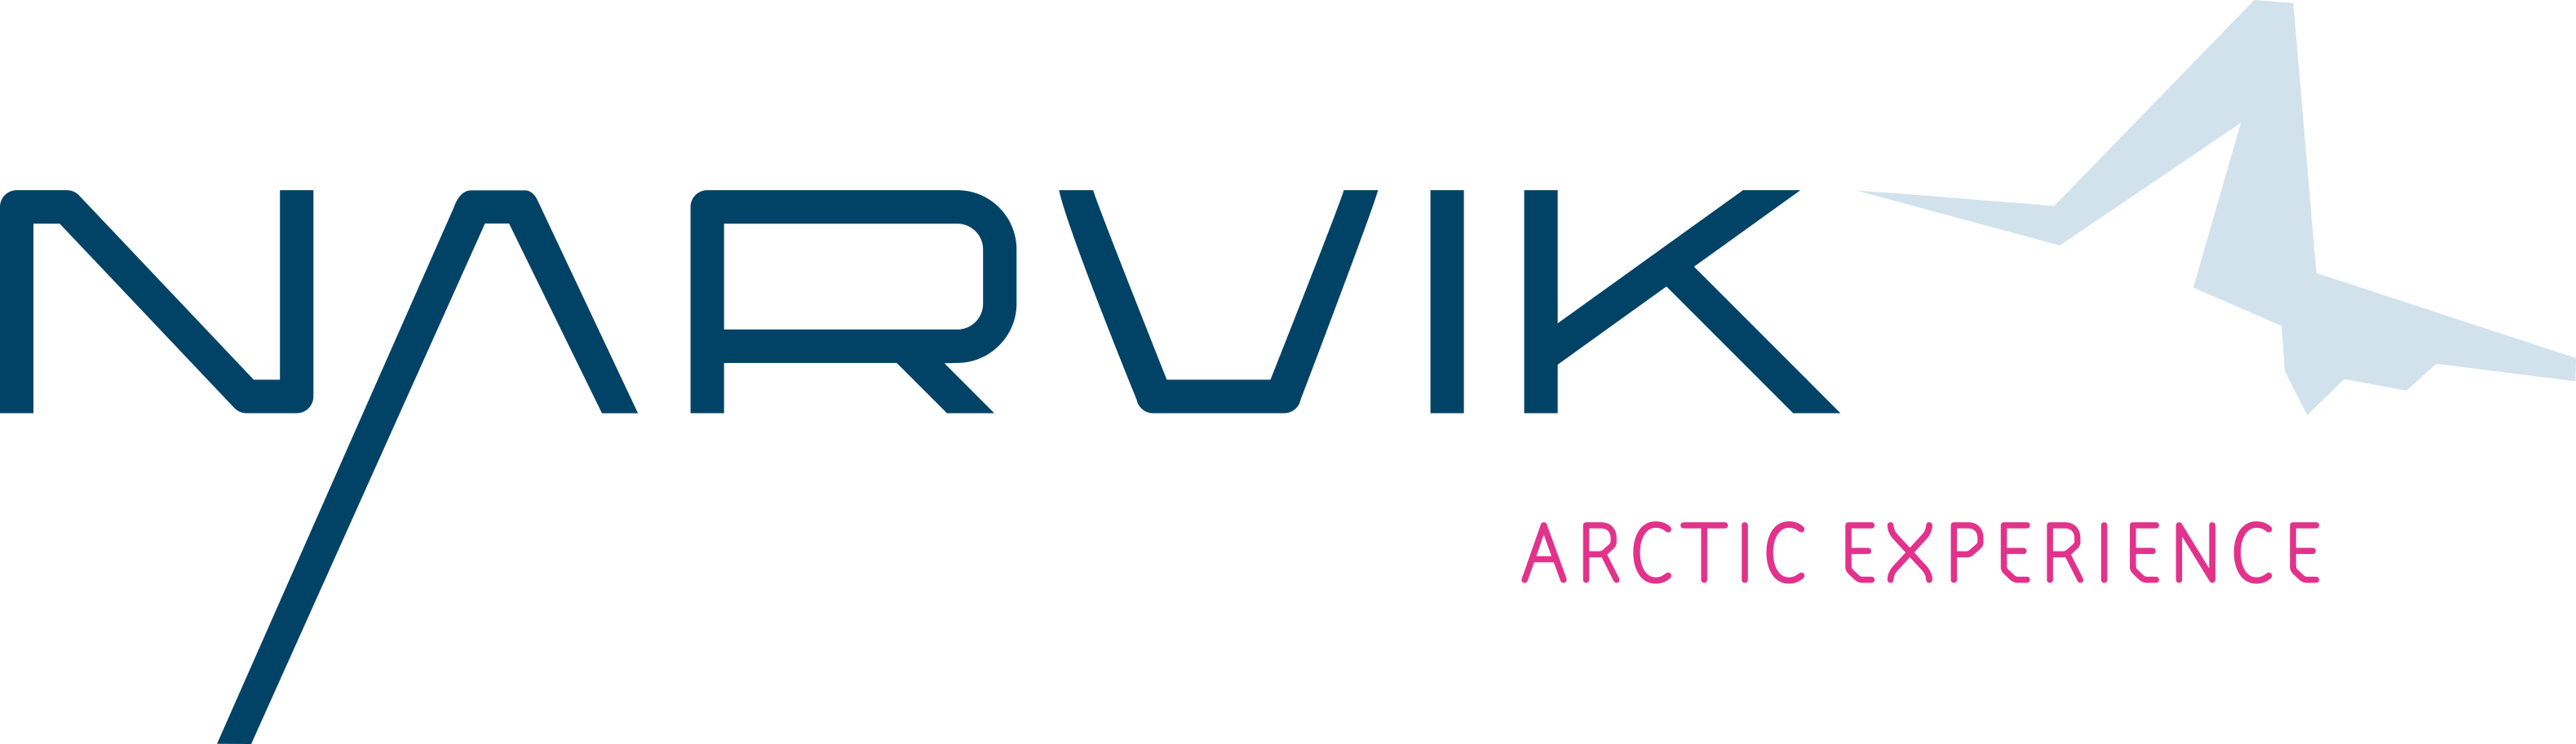 Visit Narvik Logo English